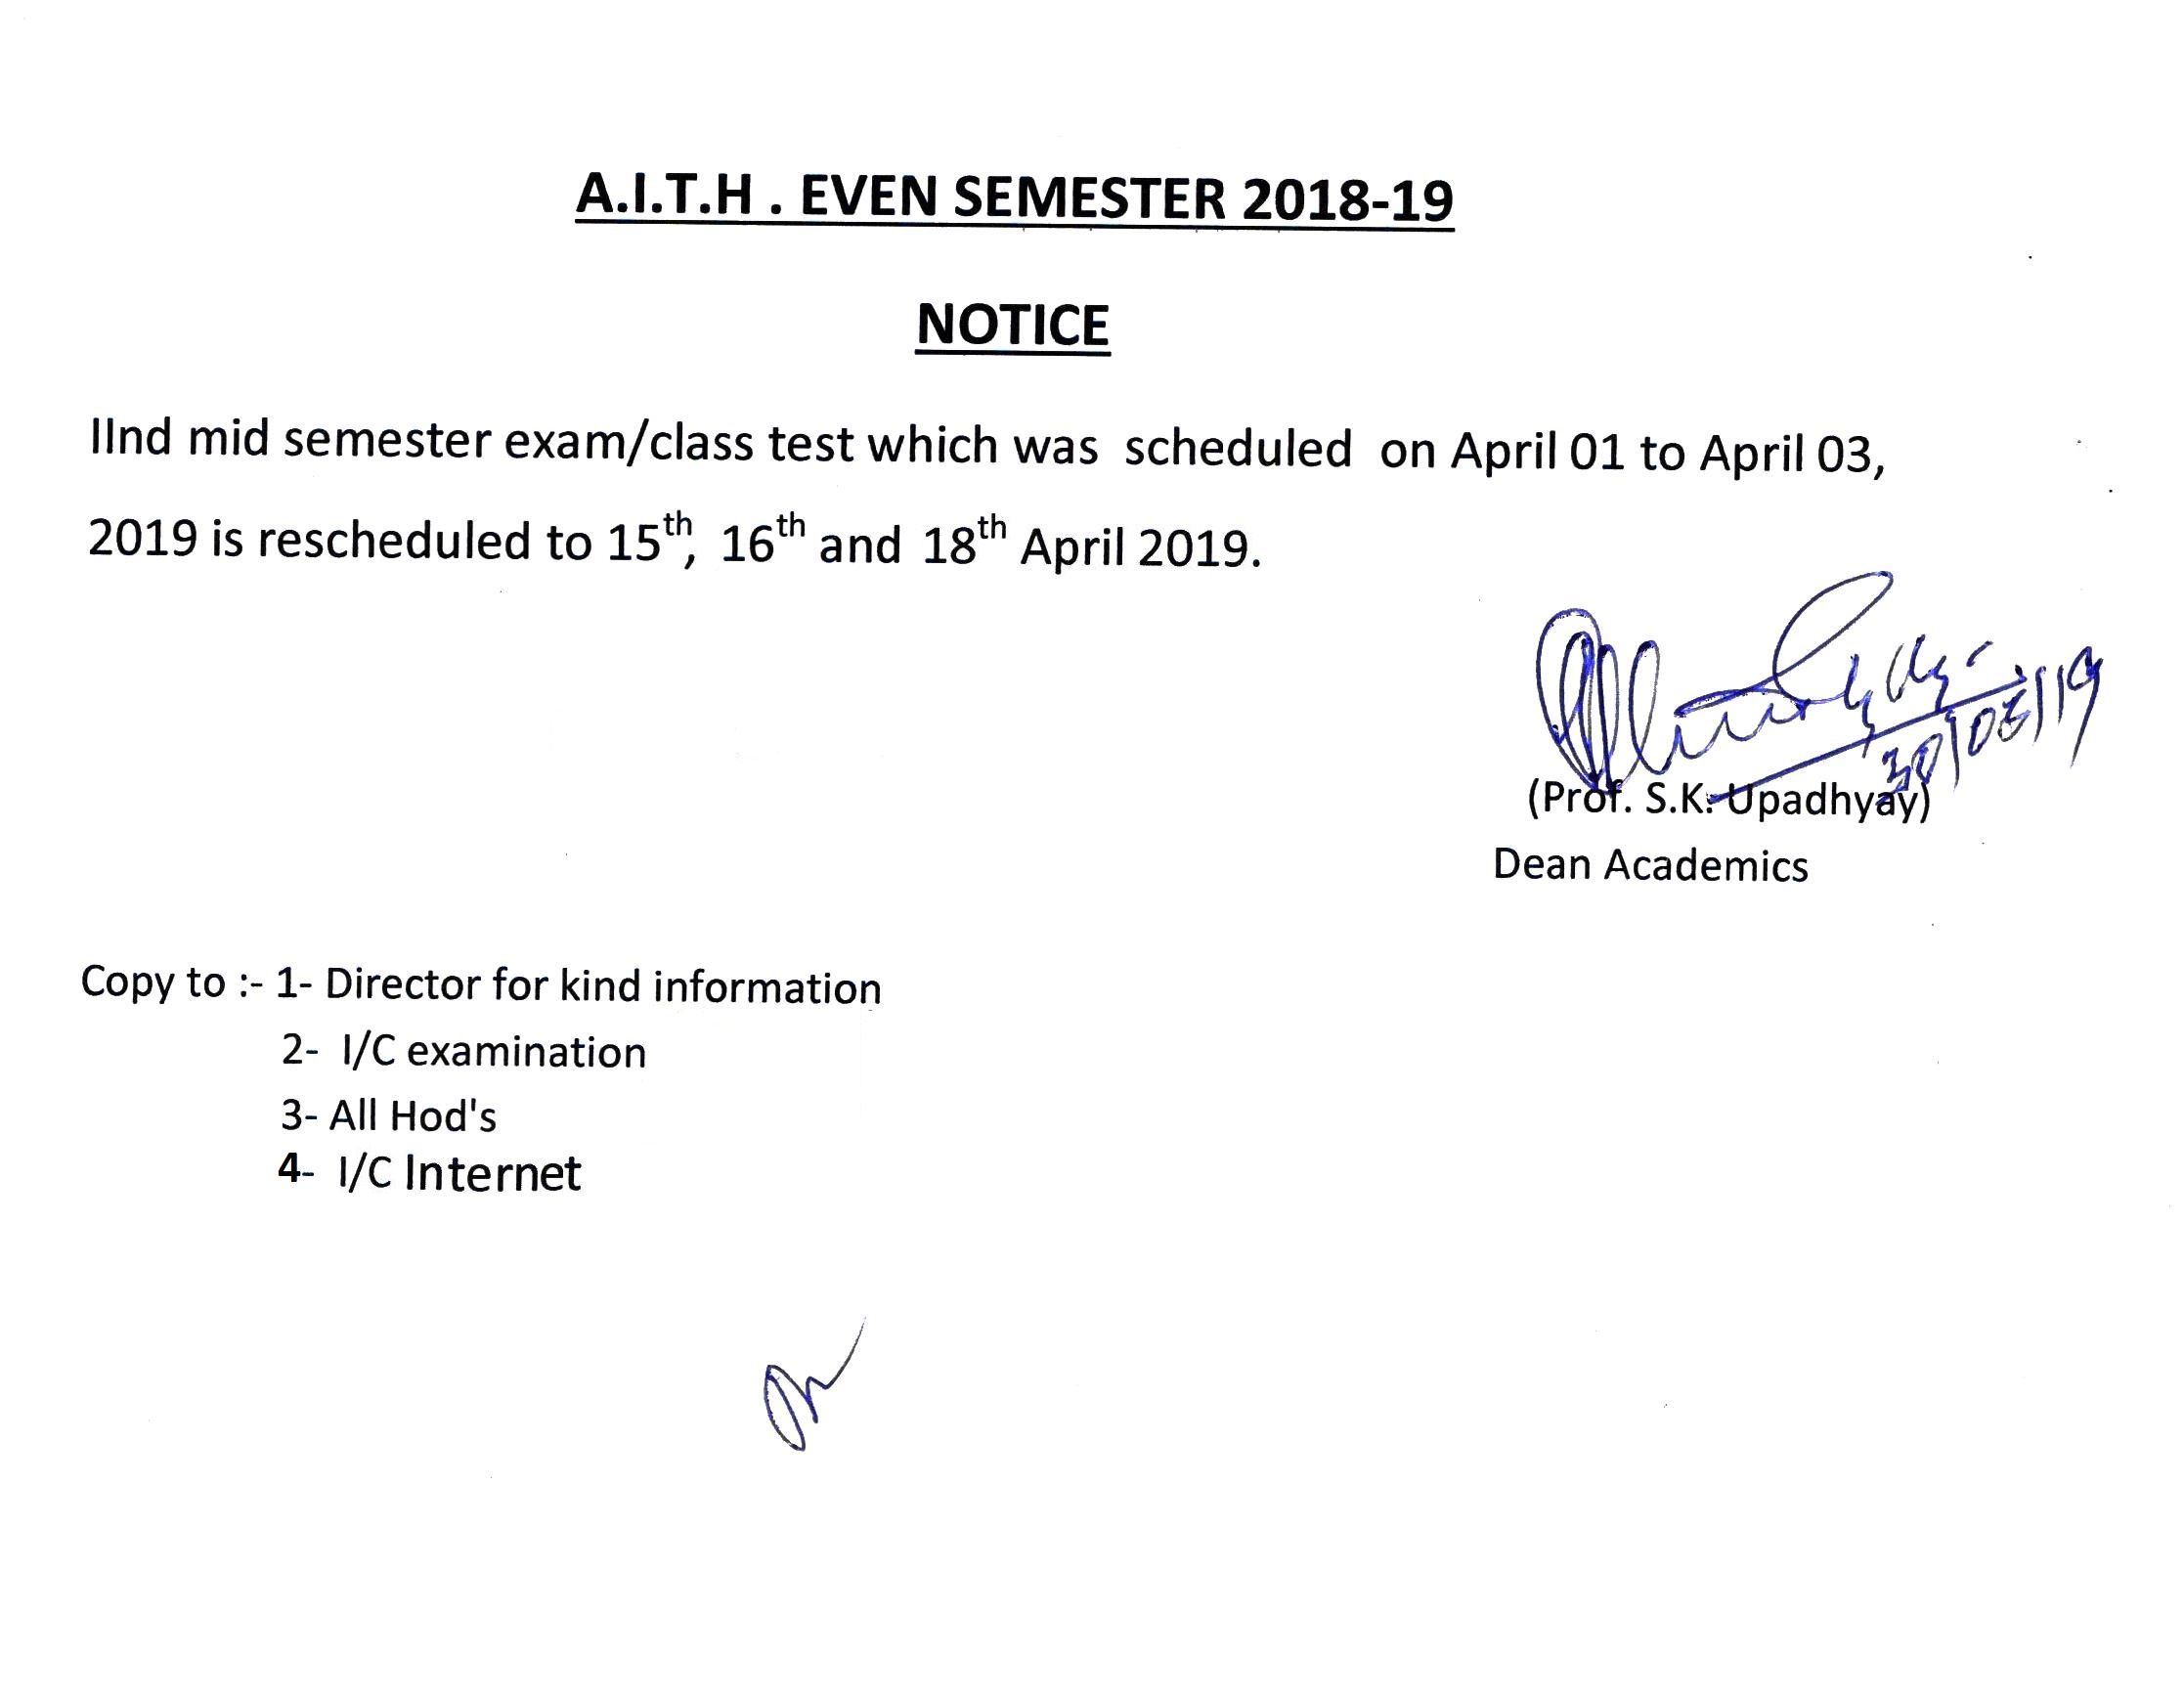 AITH : Dr  Ambedkar Institute of Technology for Handicapped, U P